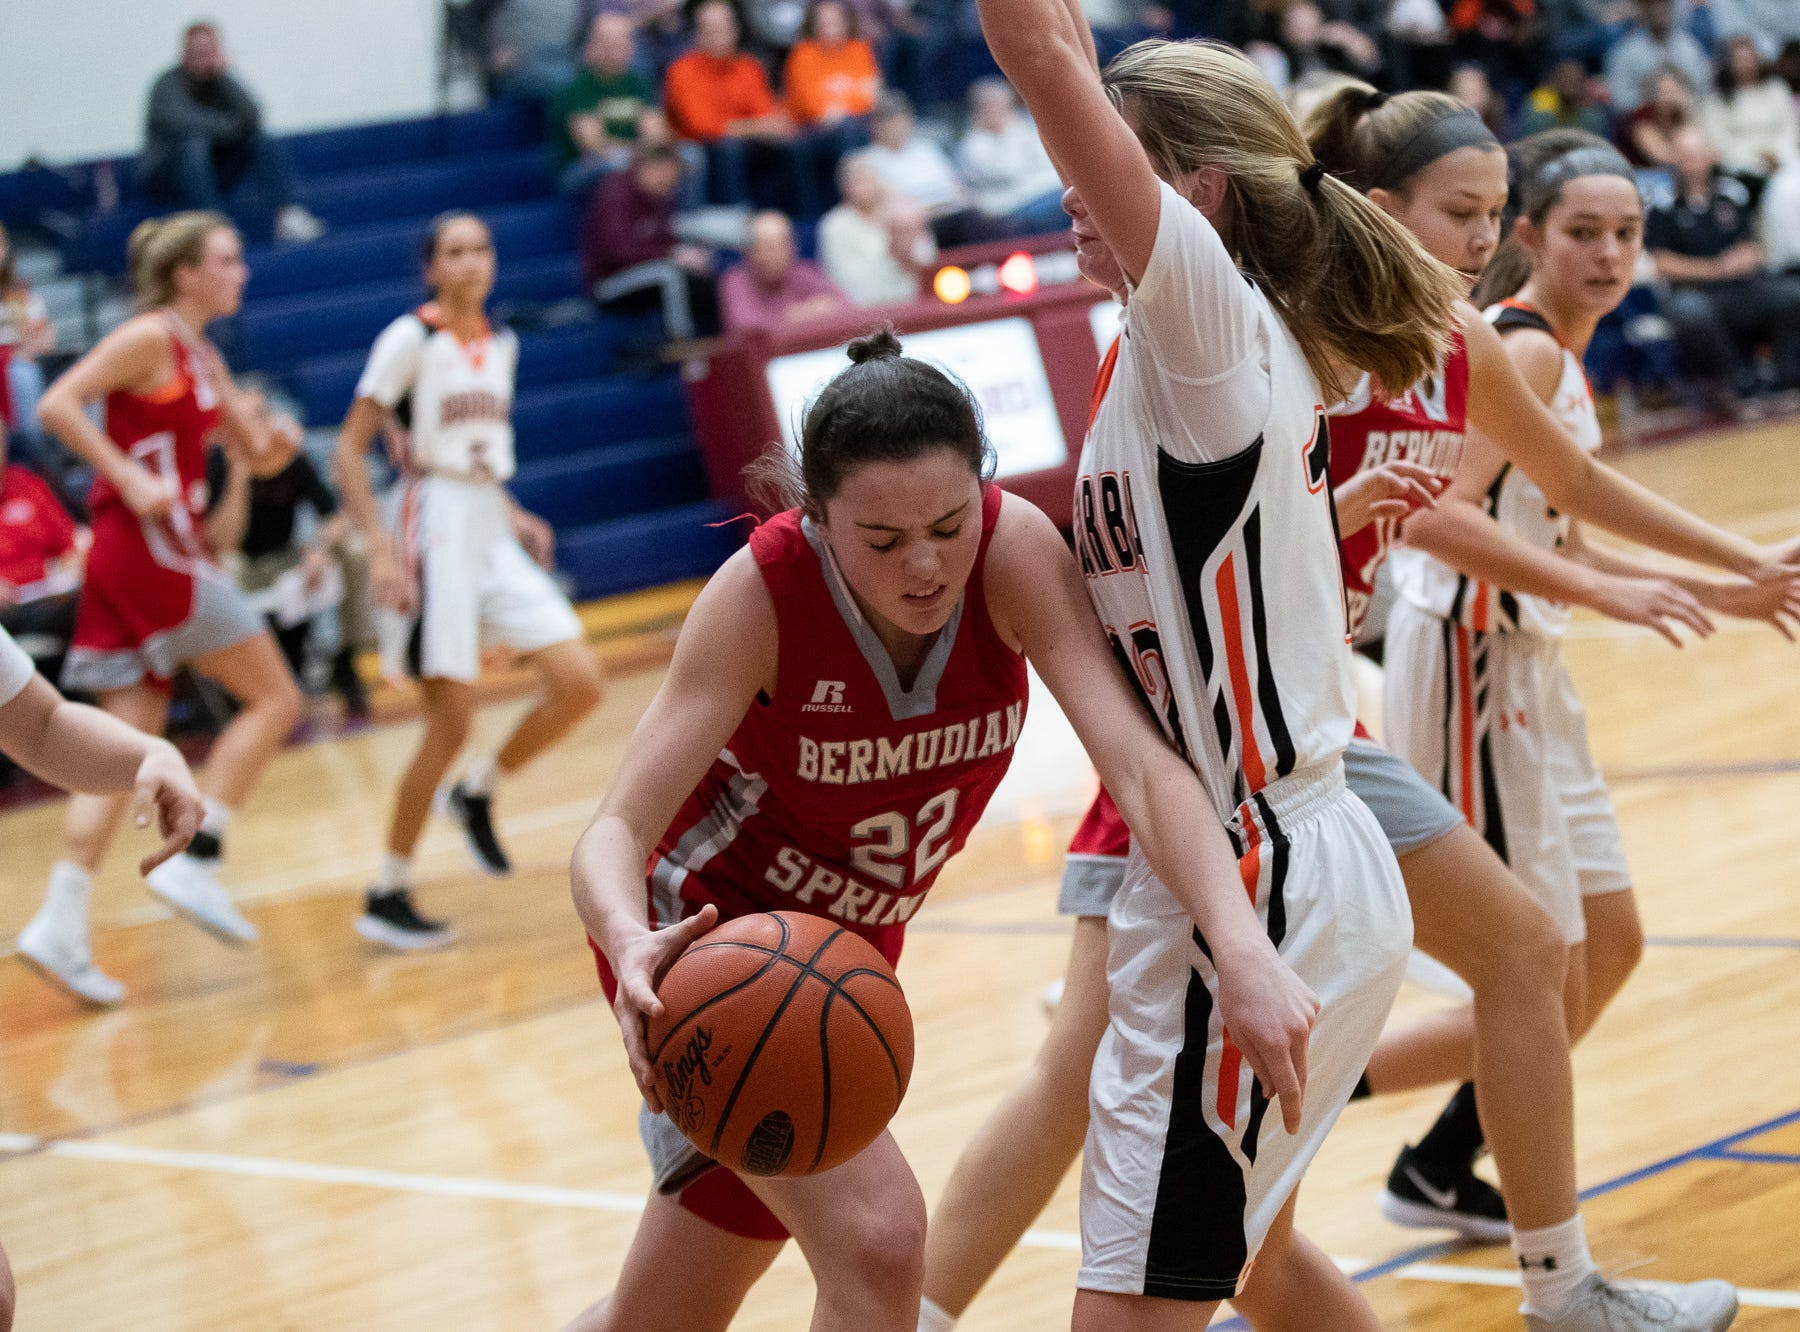 Bermudian Springs' Lilian Peters (22) drives the ball around the York Suburban defense during the consolation game between Bermudian Springs and York Suburban during the New Oxford Girls Basketball Tip-Off Tournament, Saturday, Dec. 8, 2018, in New Oxford. The Bermudian Springs Lady Eagles defeated the York Suburban Lady Trojans 60-58.